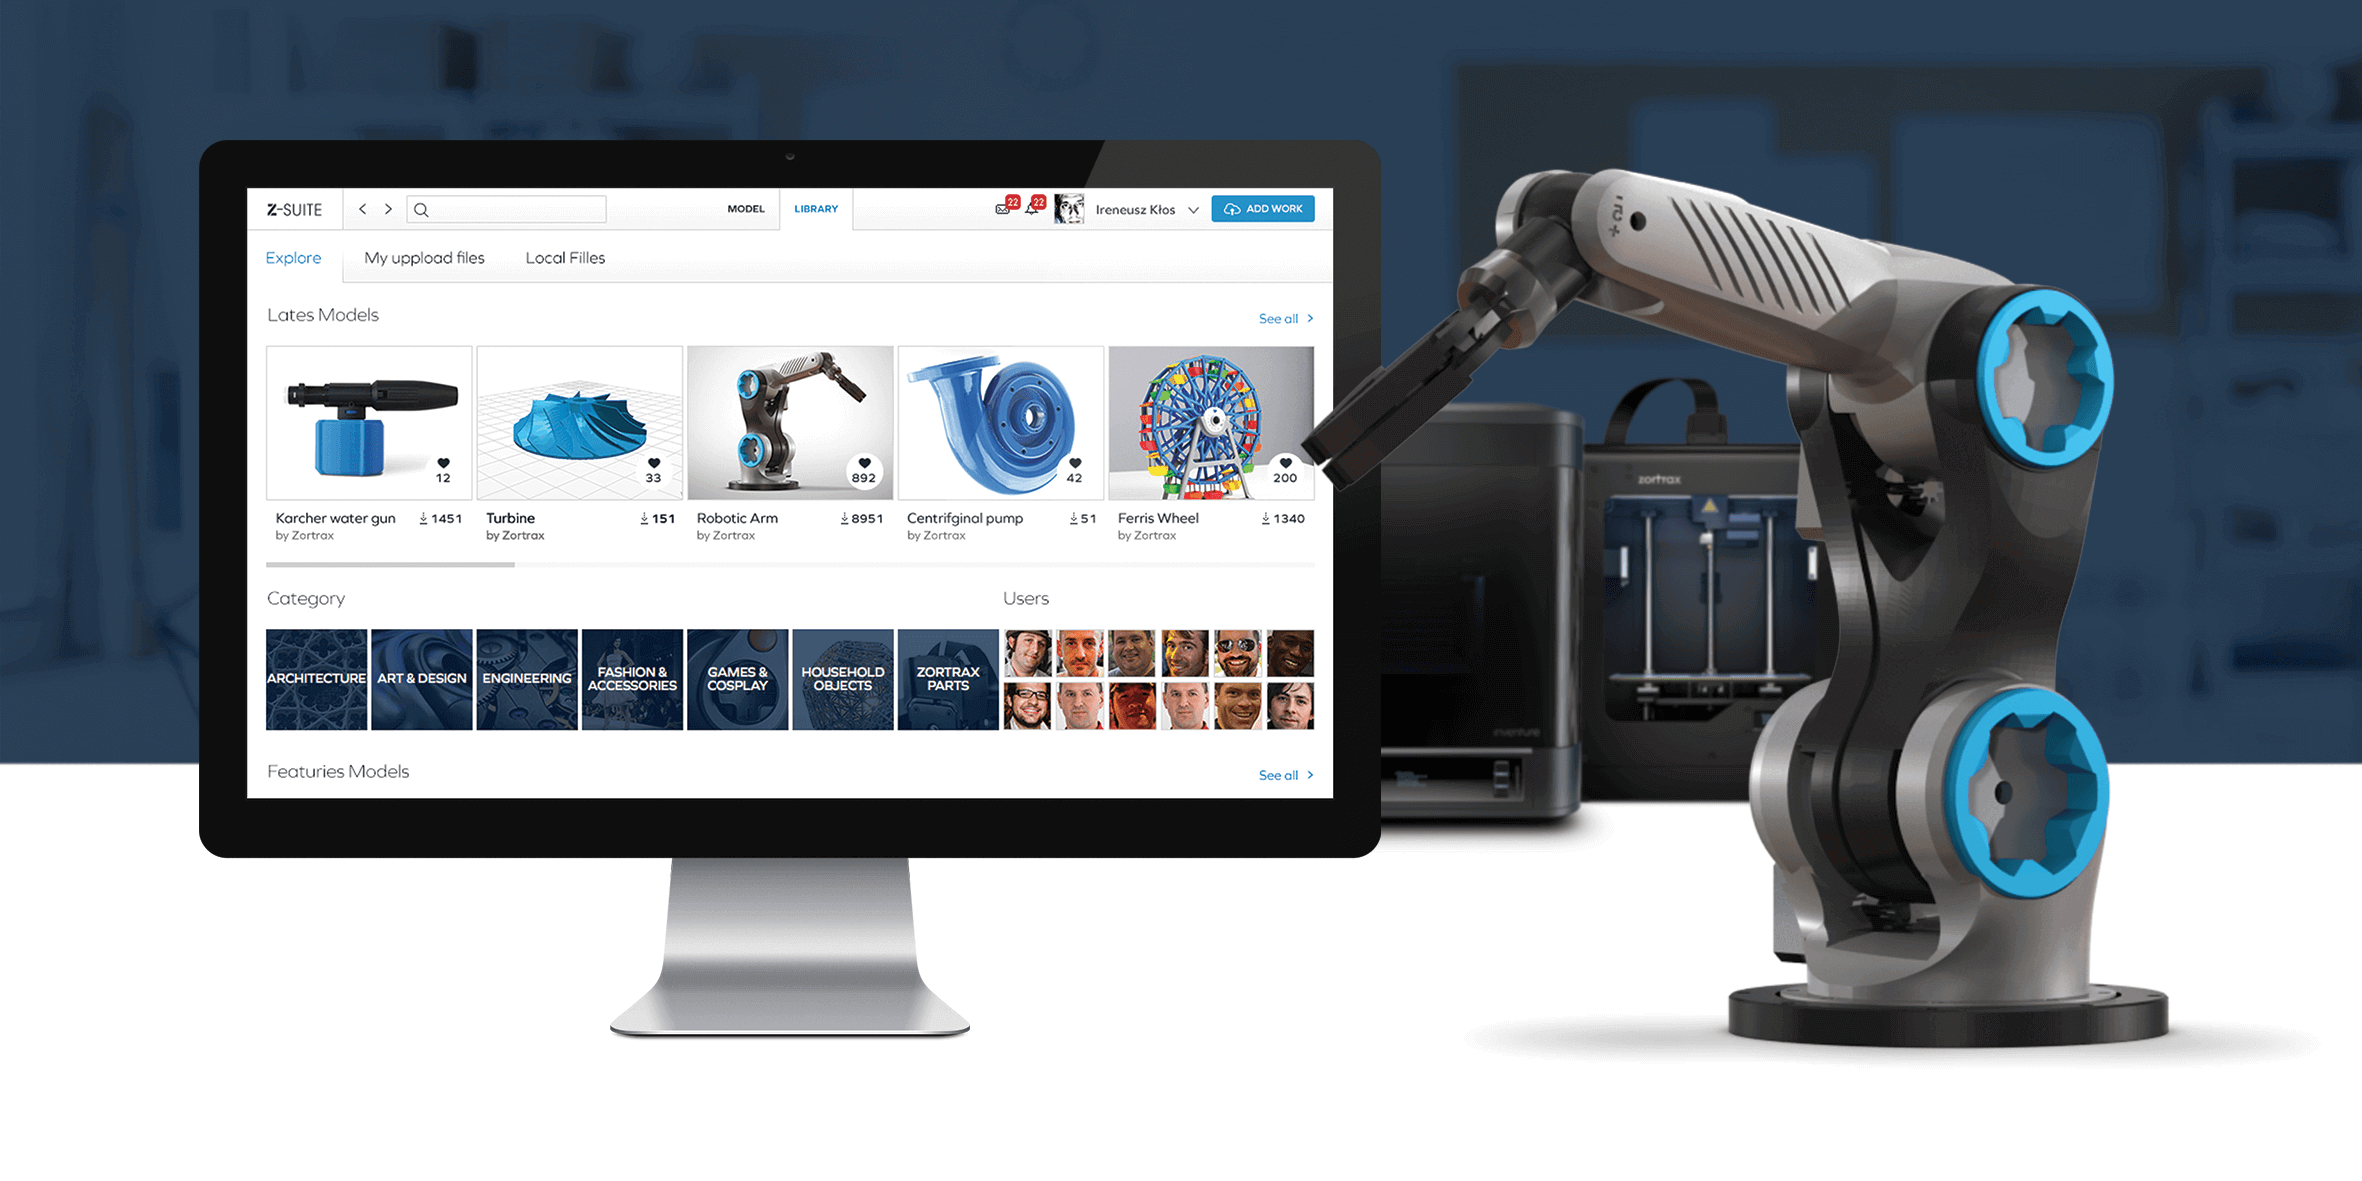 Zortrax News: Get a Free Robot Arm | All3DP